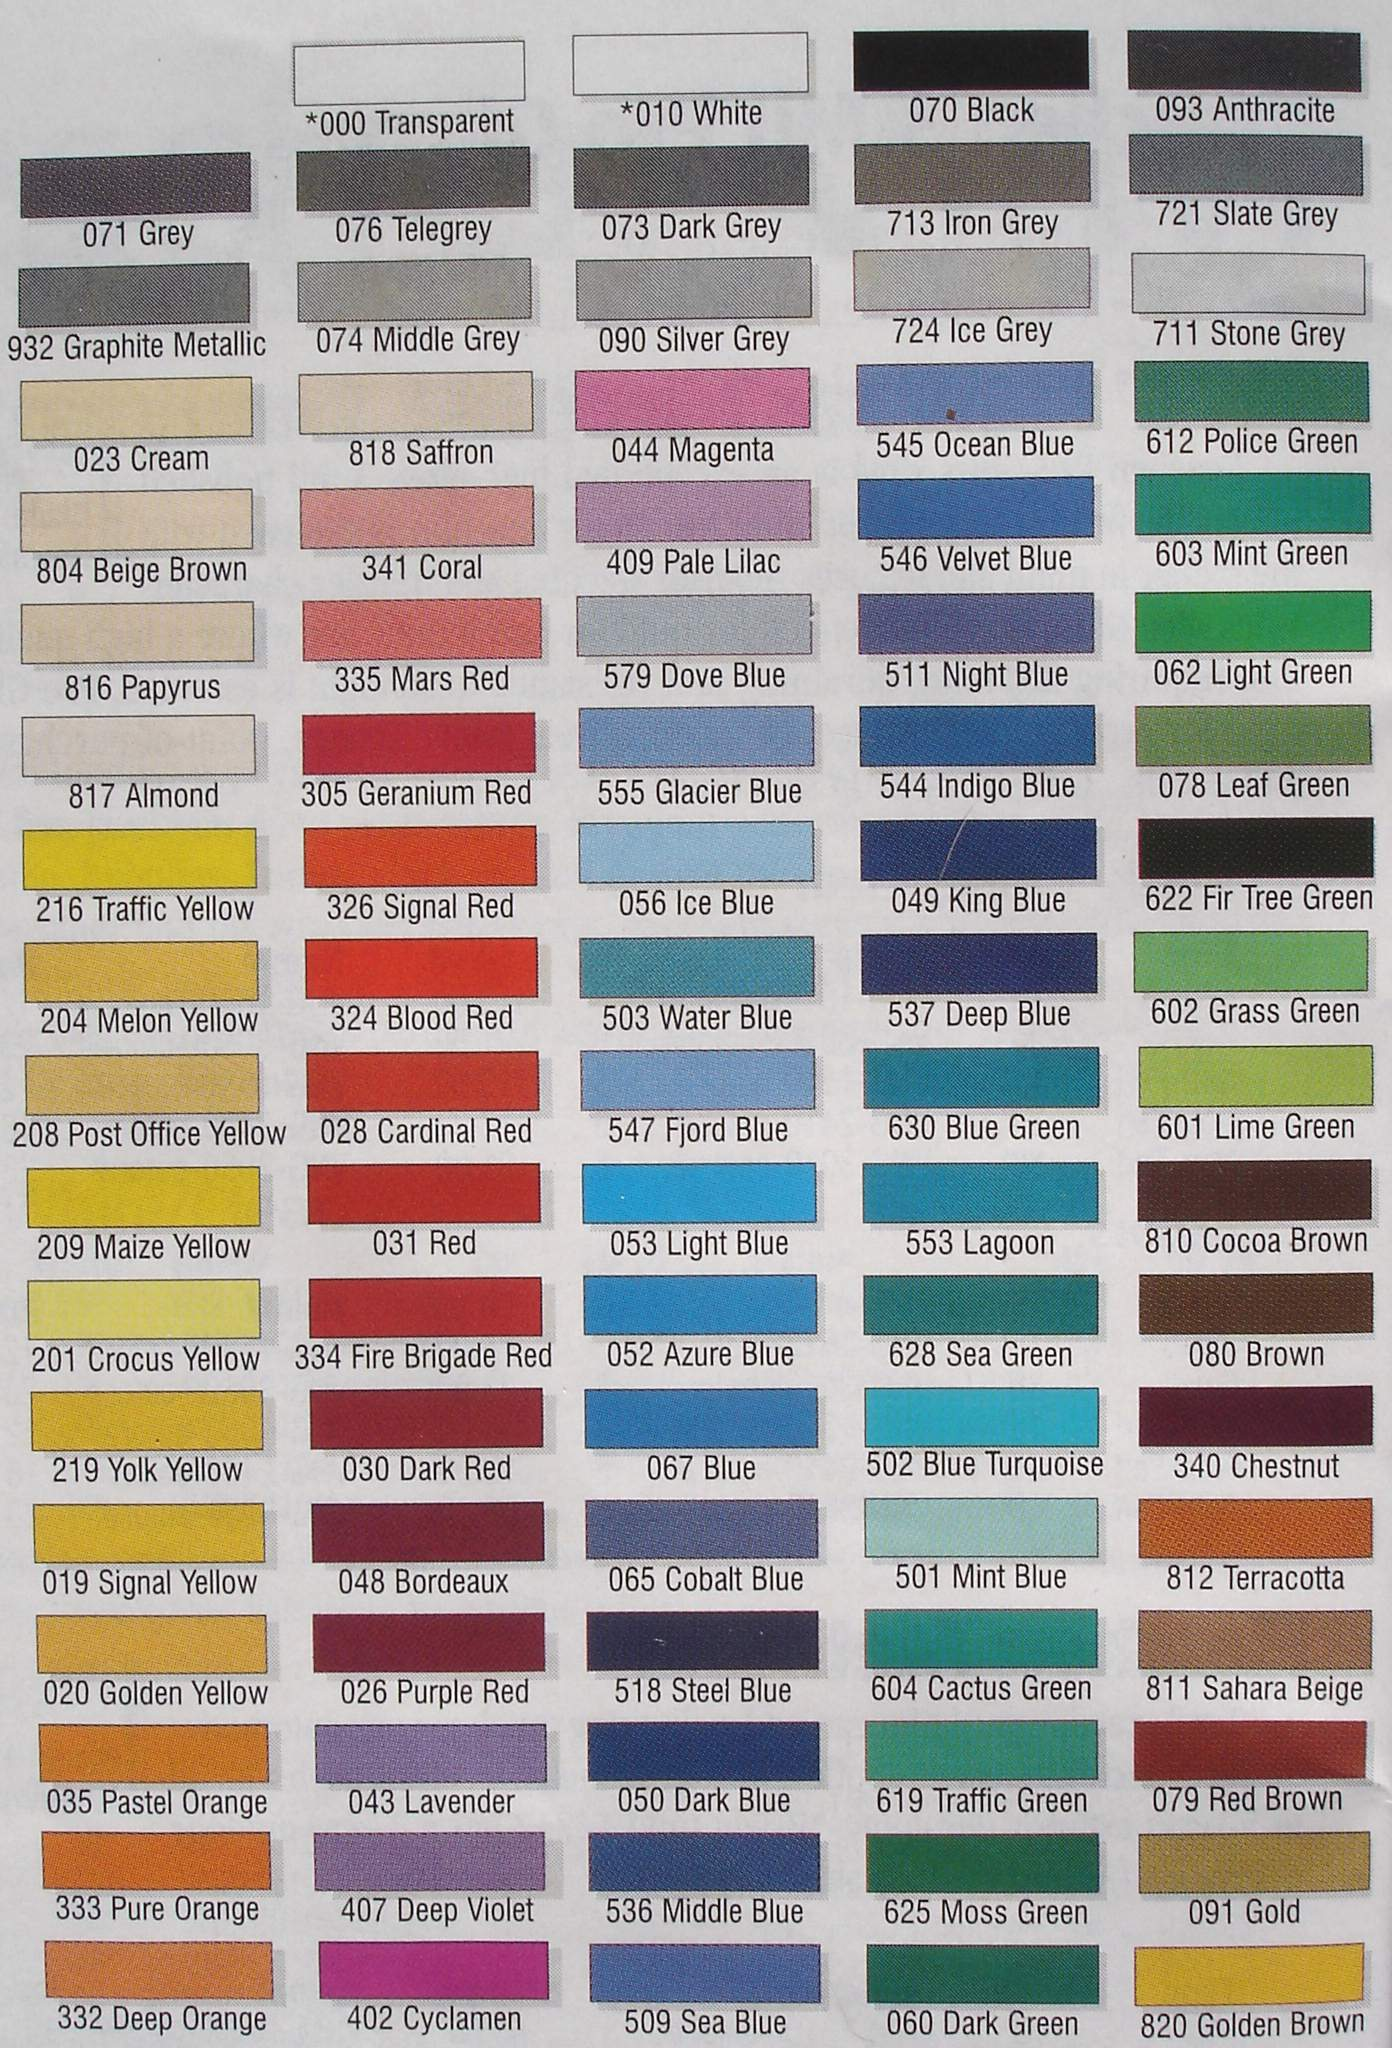 Dupont hot hues paint color chart paint color ideas dupont hot hues paint color chart ideas nvjuhfo Choice Image